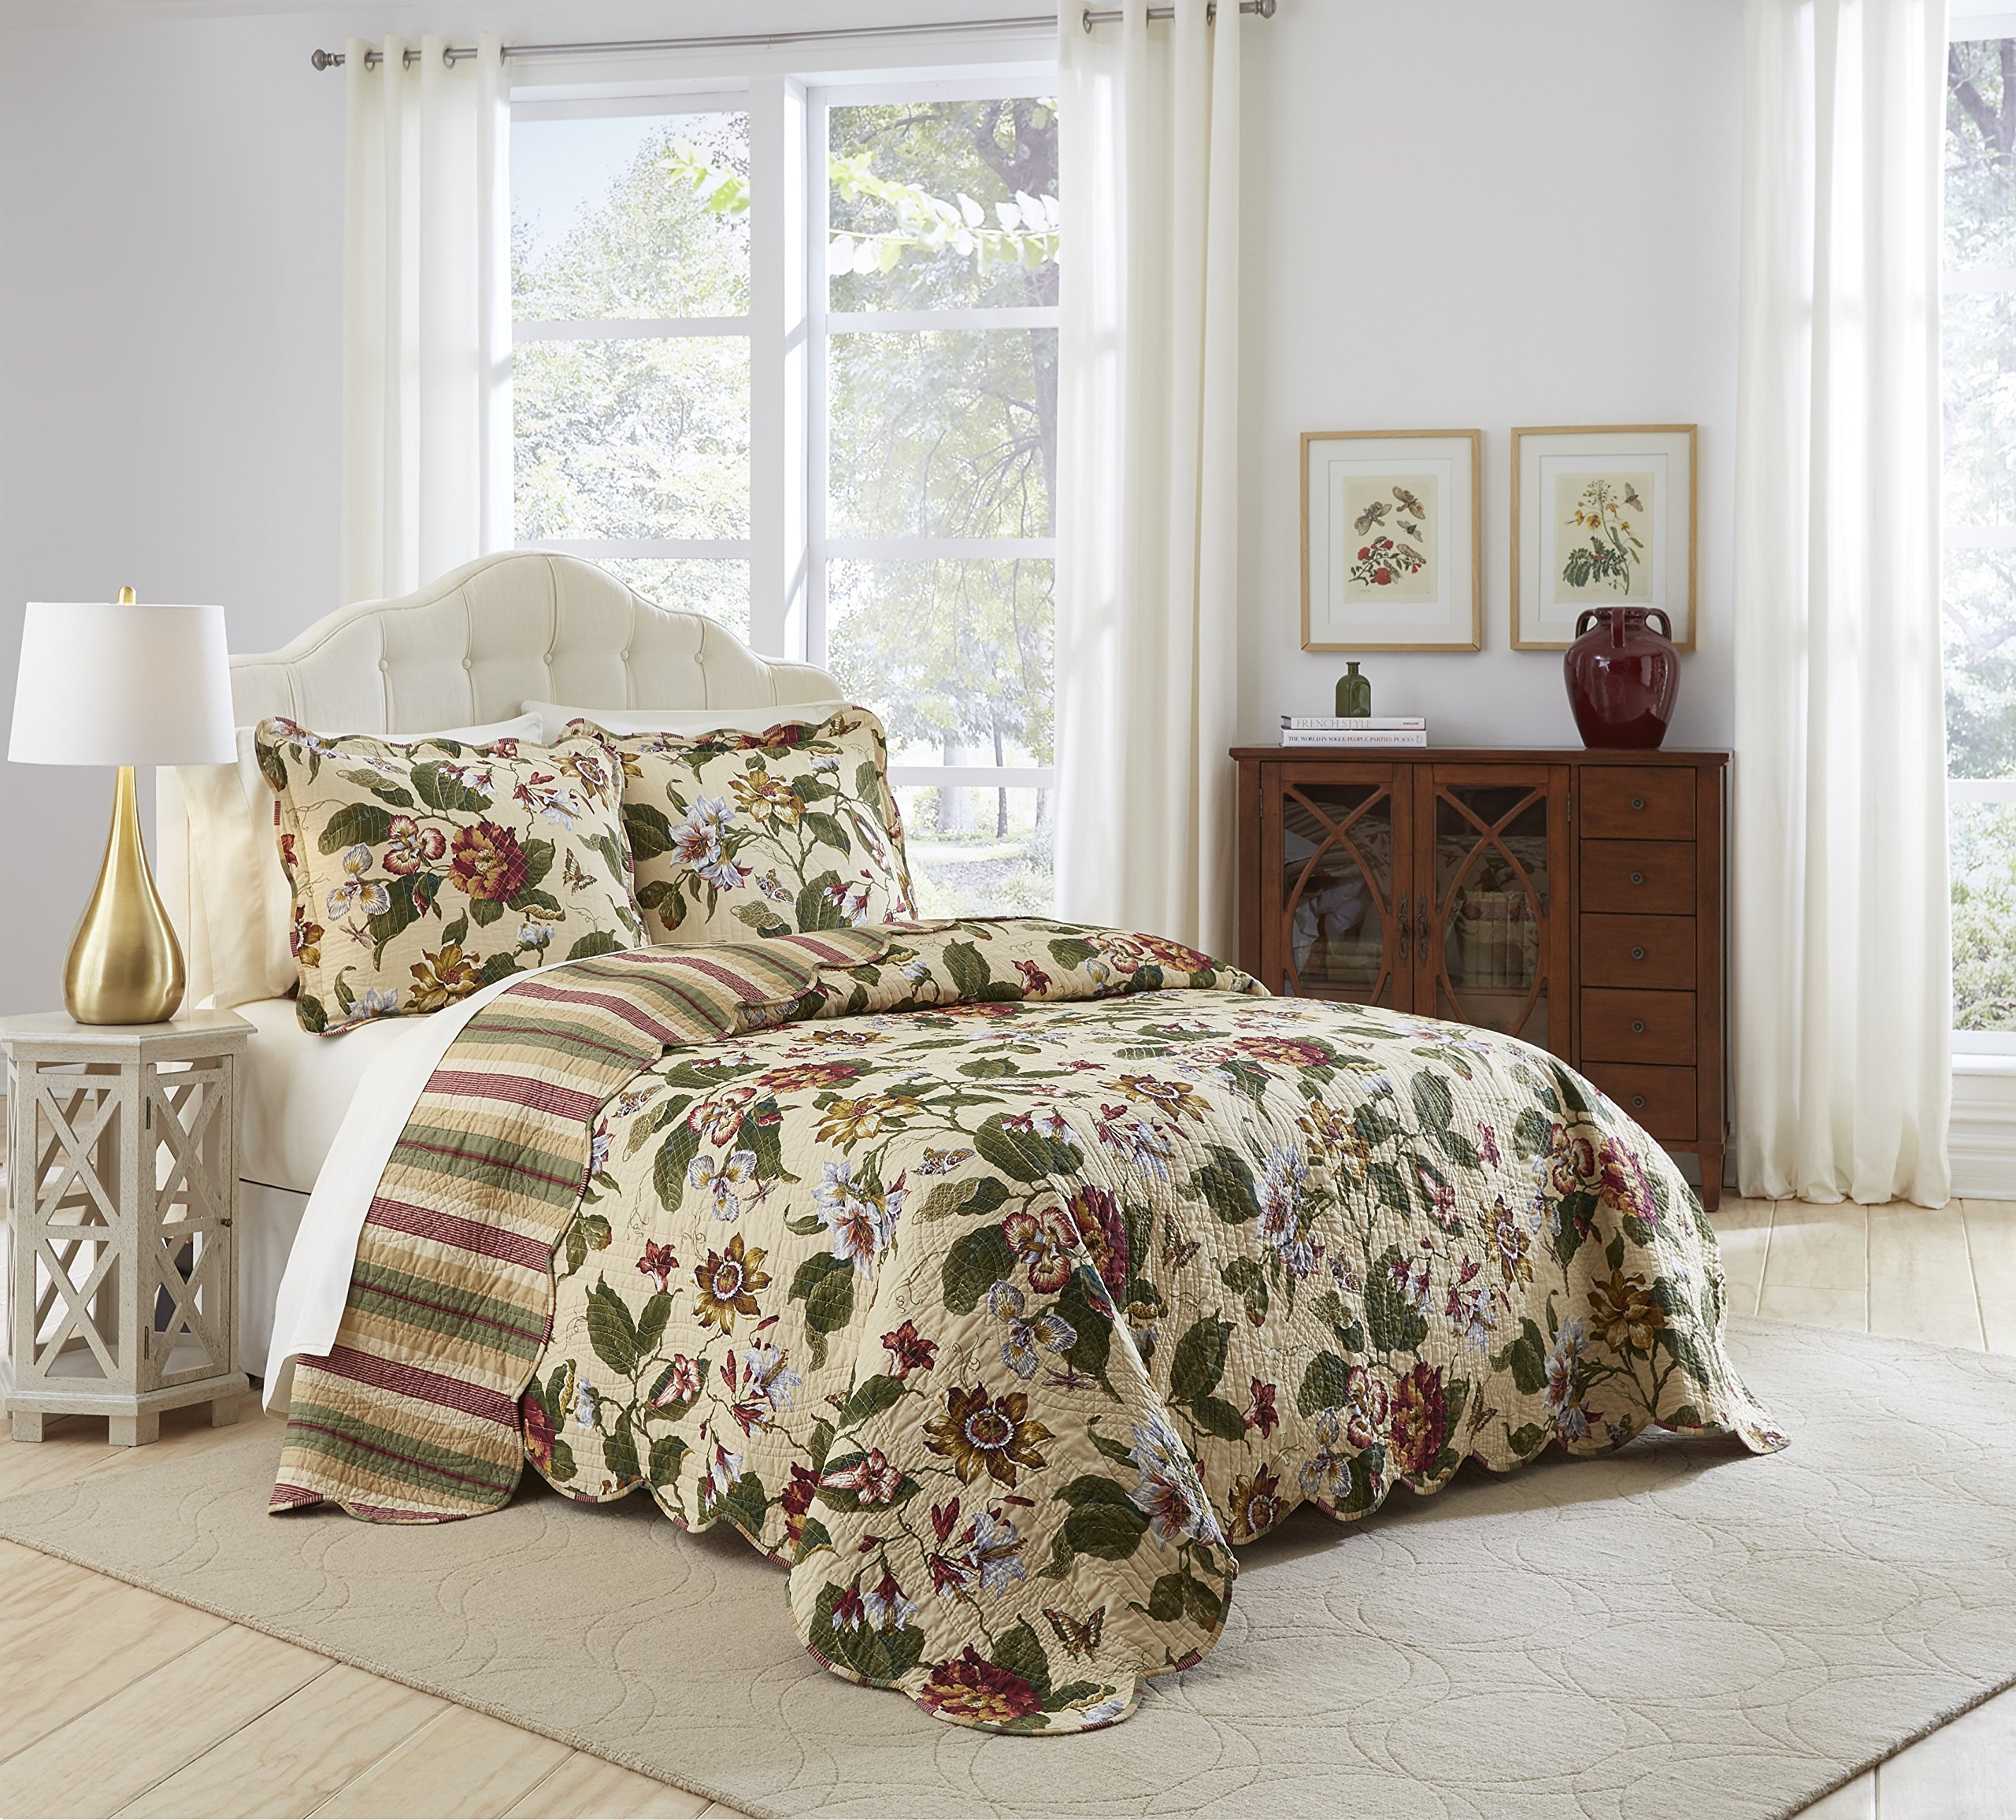 Waverly Laurel Springs Bedspread Collection, 96x110, Parchment